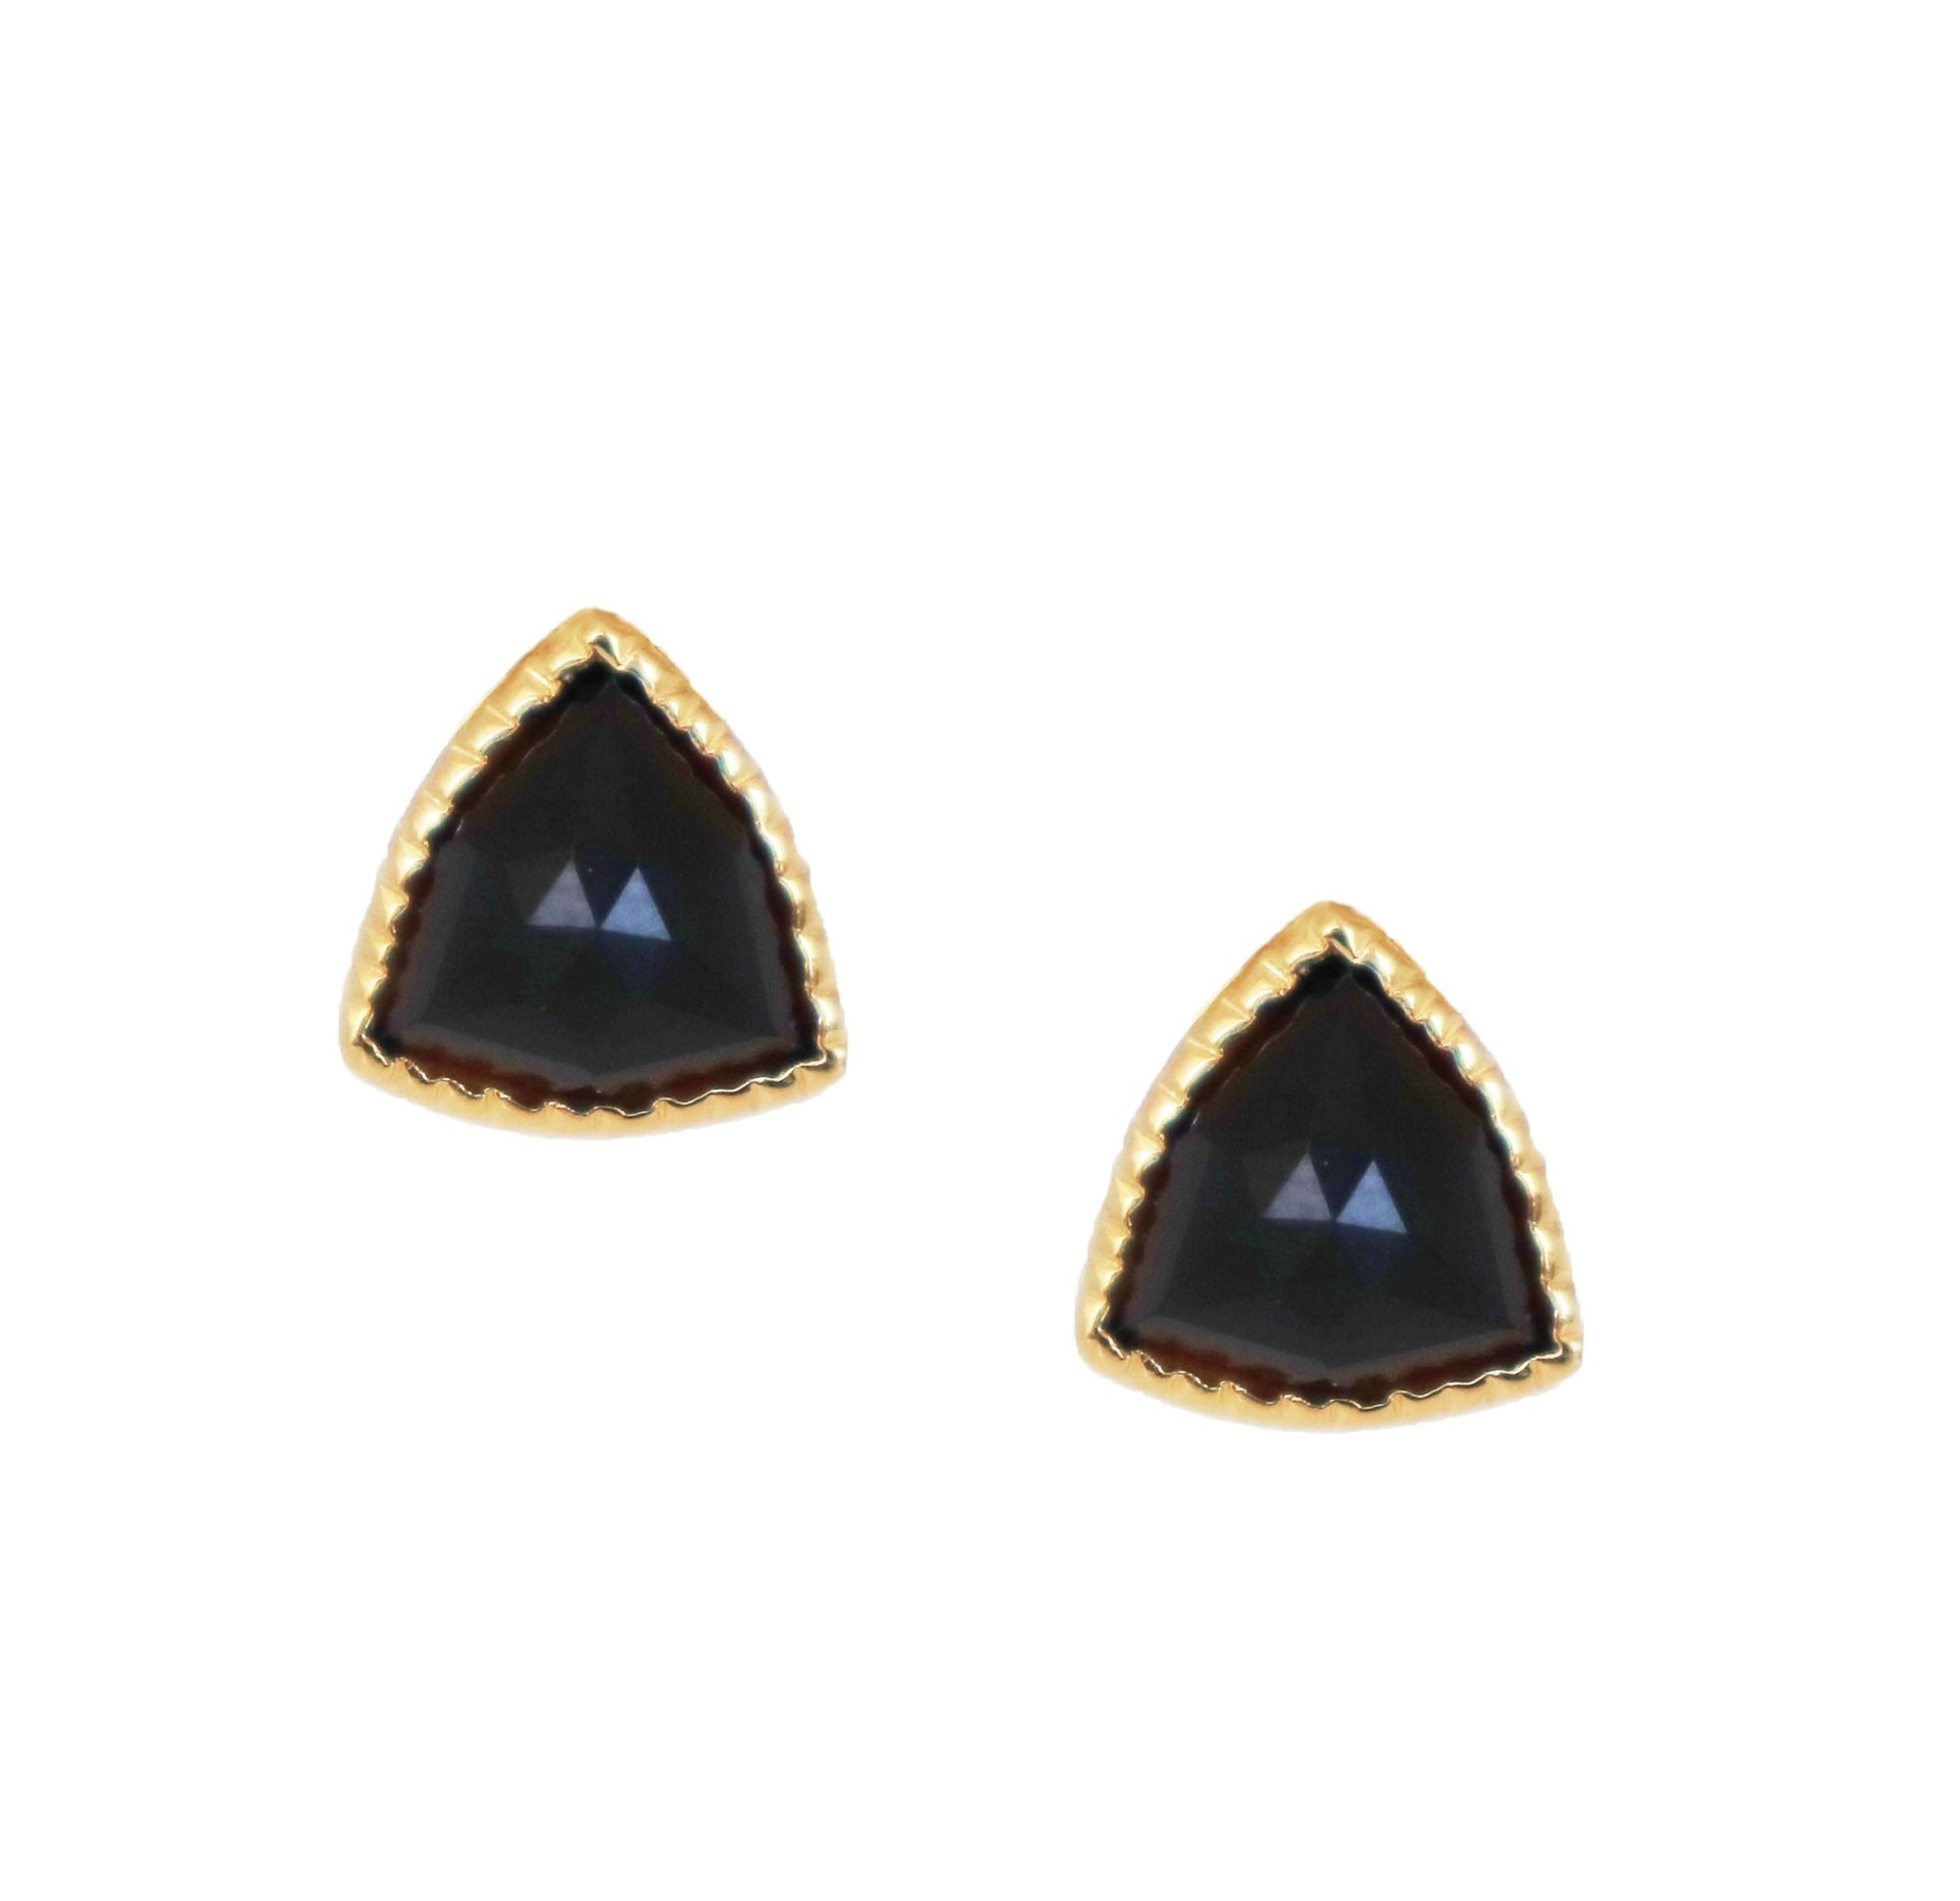 MINI FREEDOM STUD EARRINGS - BLACK ONYX & GOLD - SO PRETTY CARA COTTER